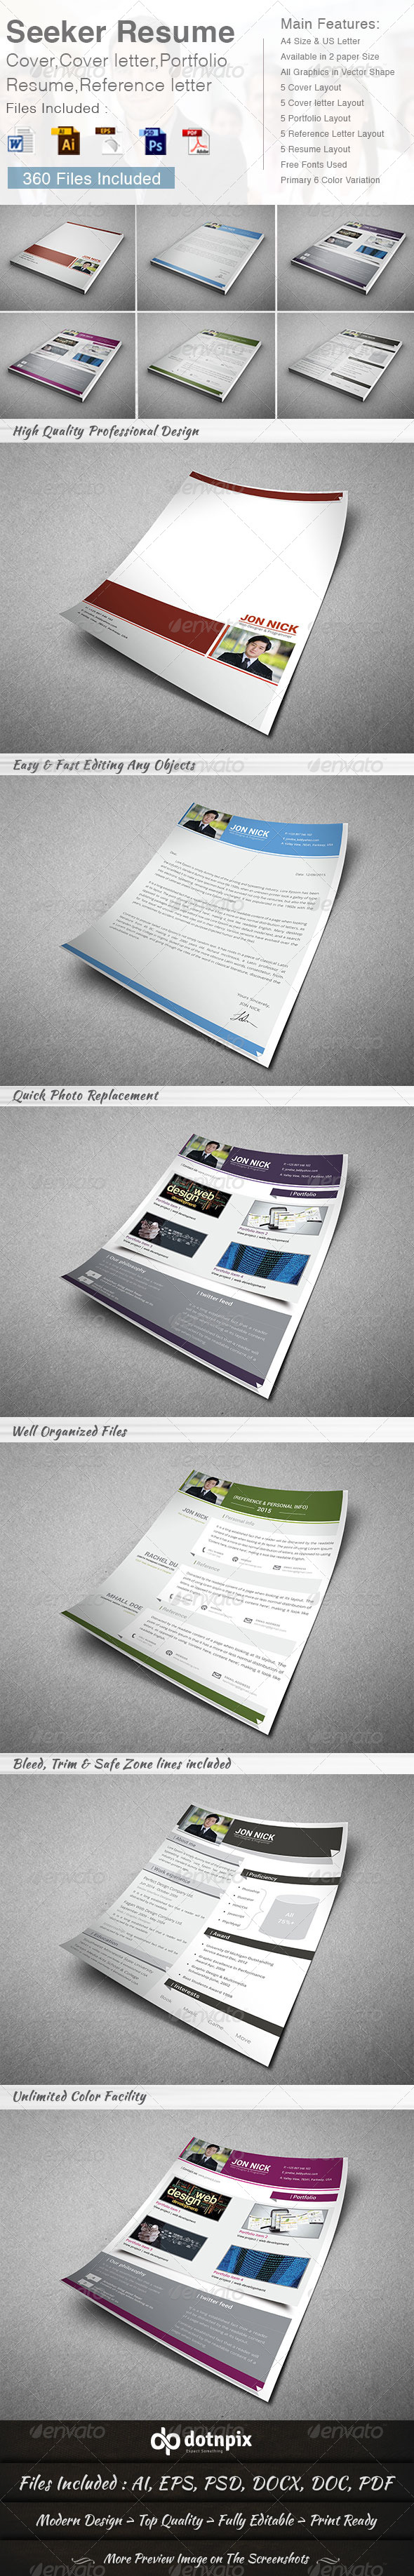 GraphicRiver Seeker Resume 8611414